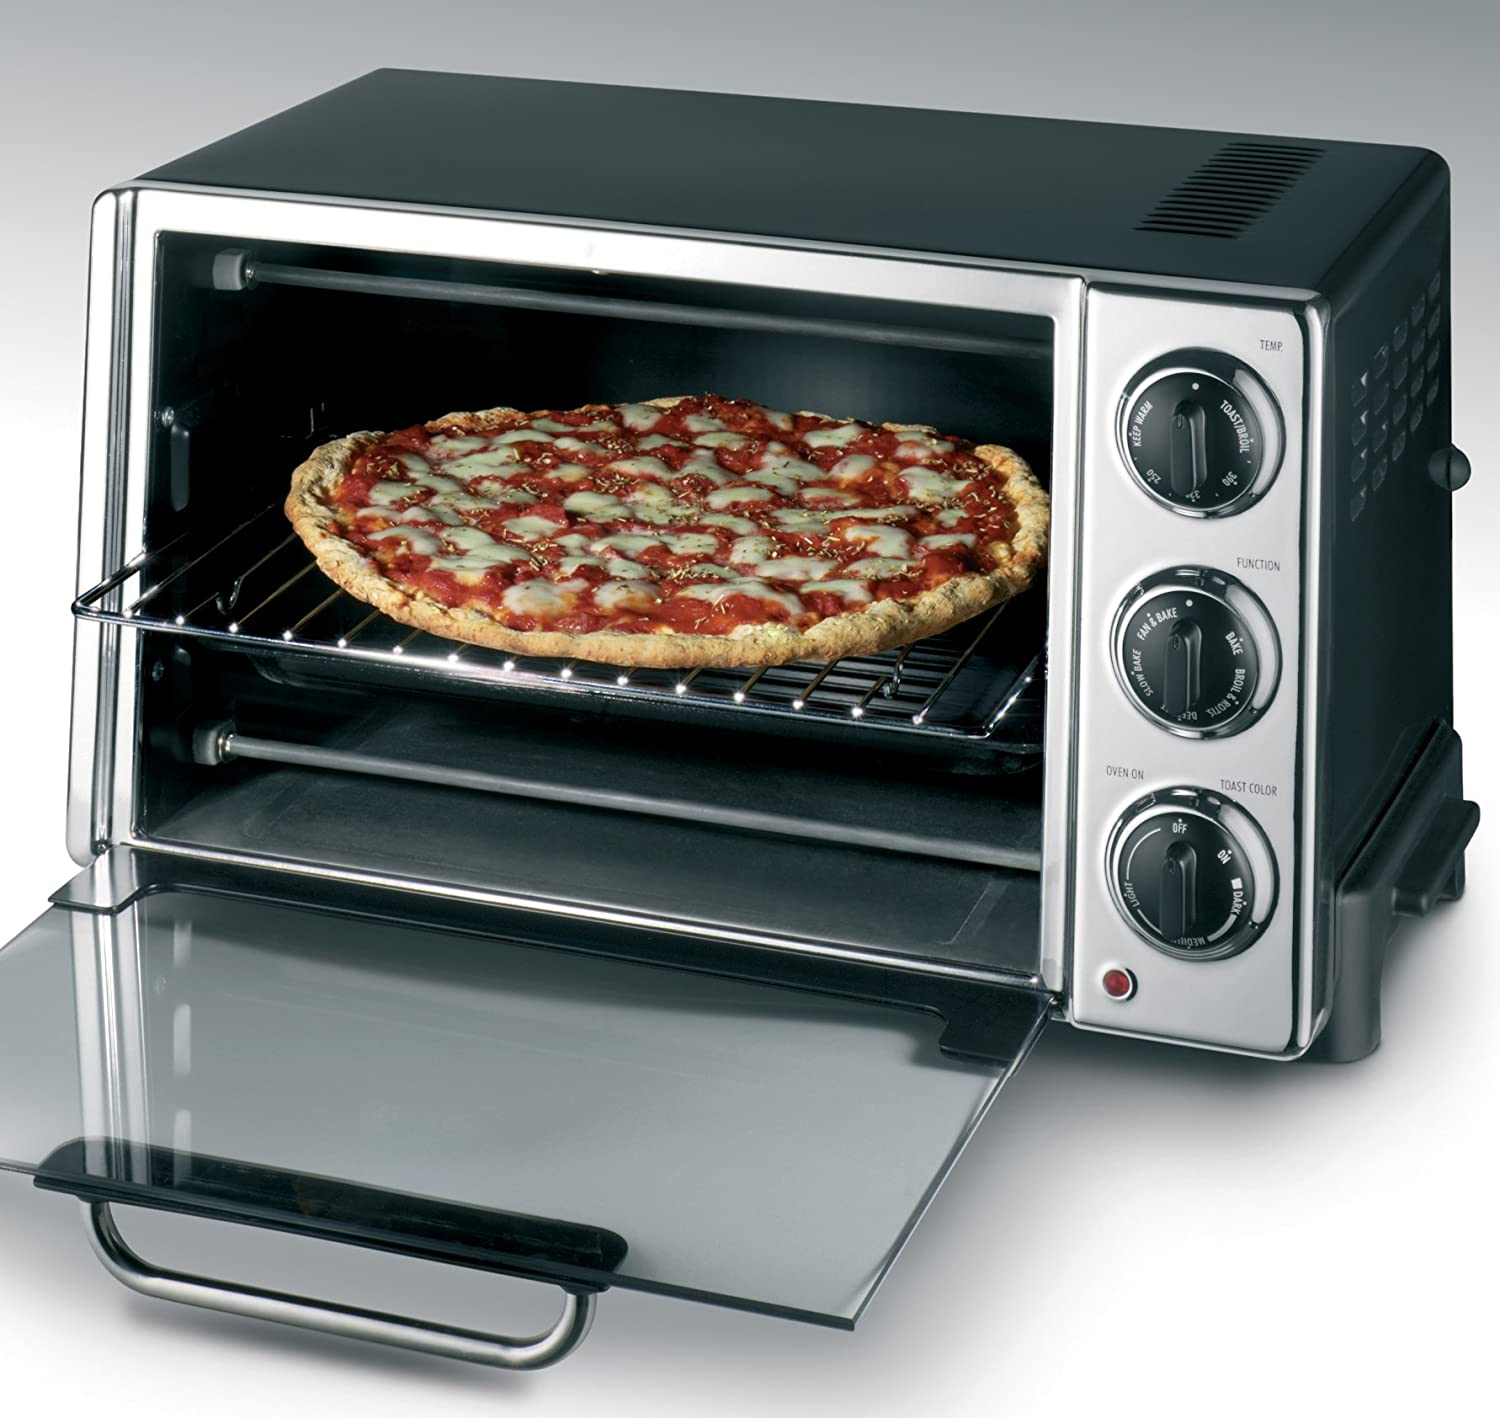 Countertop Convection Oven Rotisserie Bake Pizza Toaster Broil Warm ...